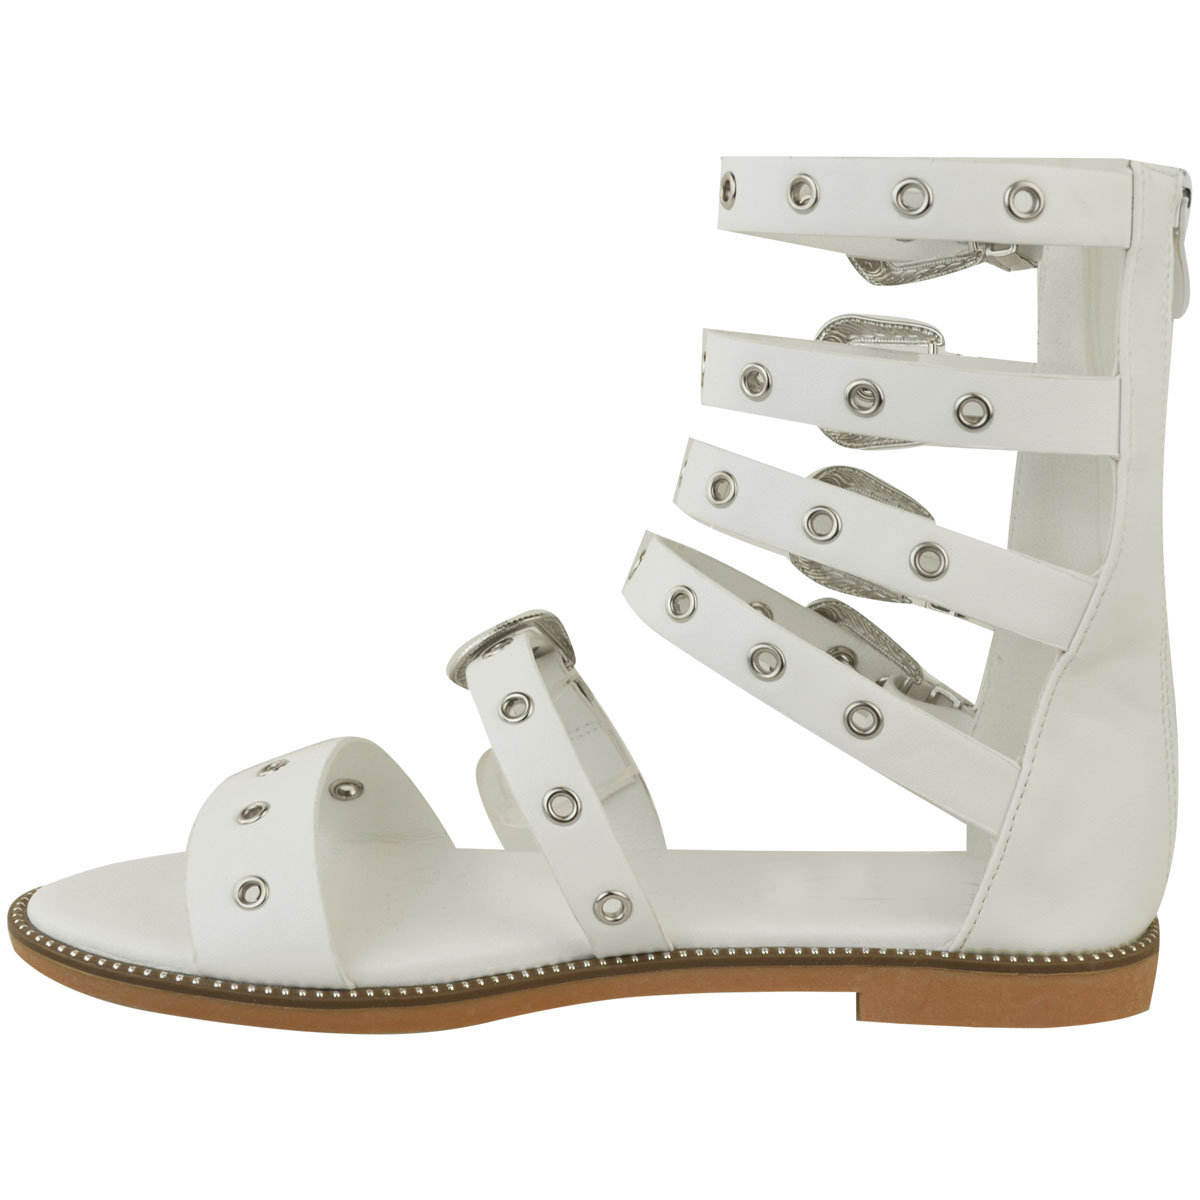 Ladies-Womens-Flat-Sandals-Buckle-Strappy-Cut-Out-Studded-Gladiator-Summer-Shoes